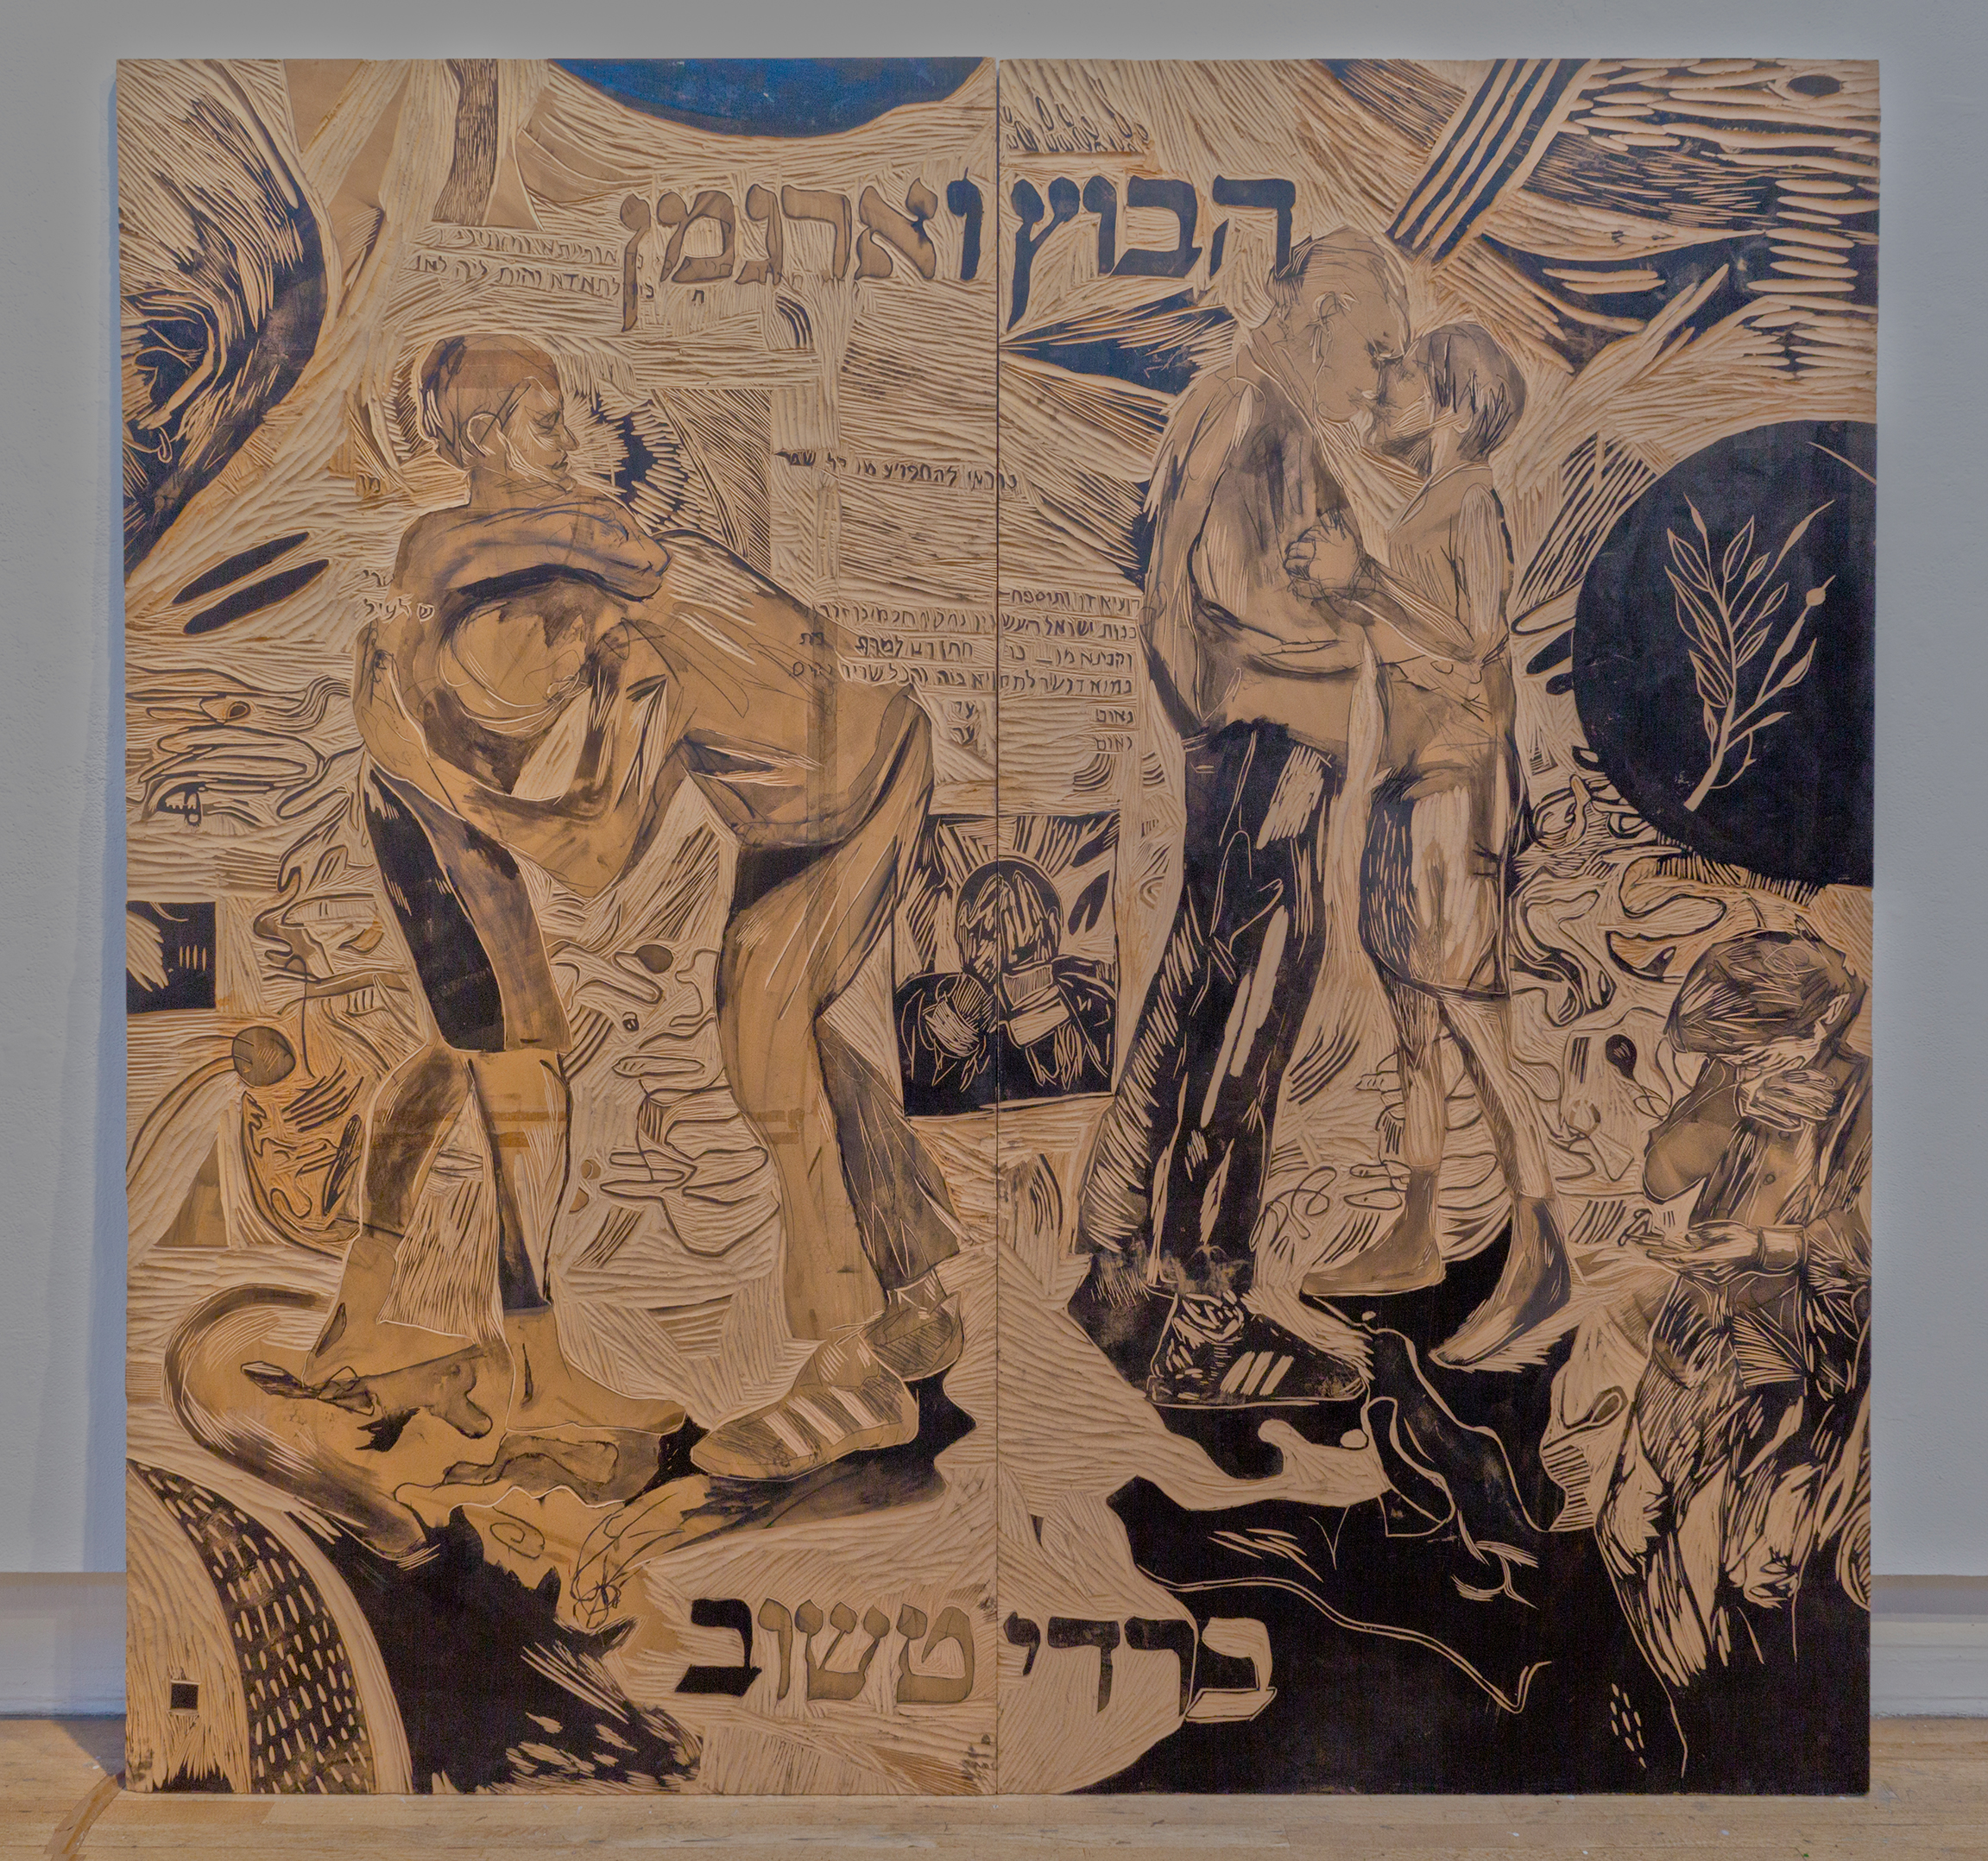 TINY RING: KETUBAH DIPTYCH  2017  Woodcut diptych  8' x 8'